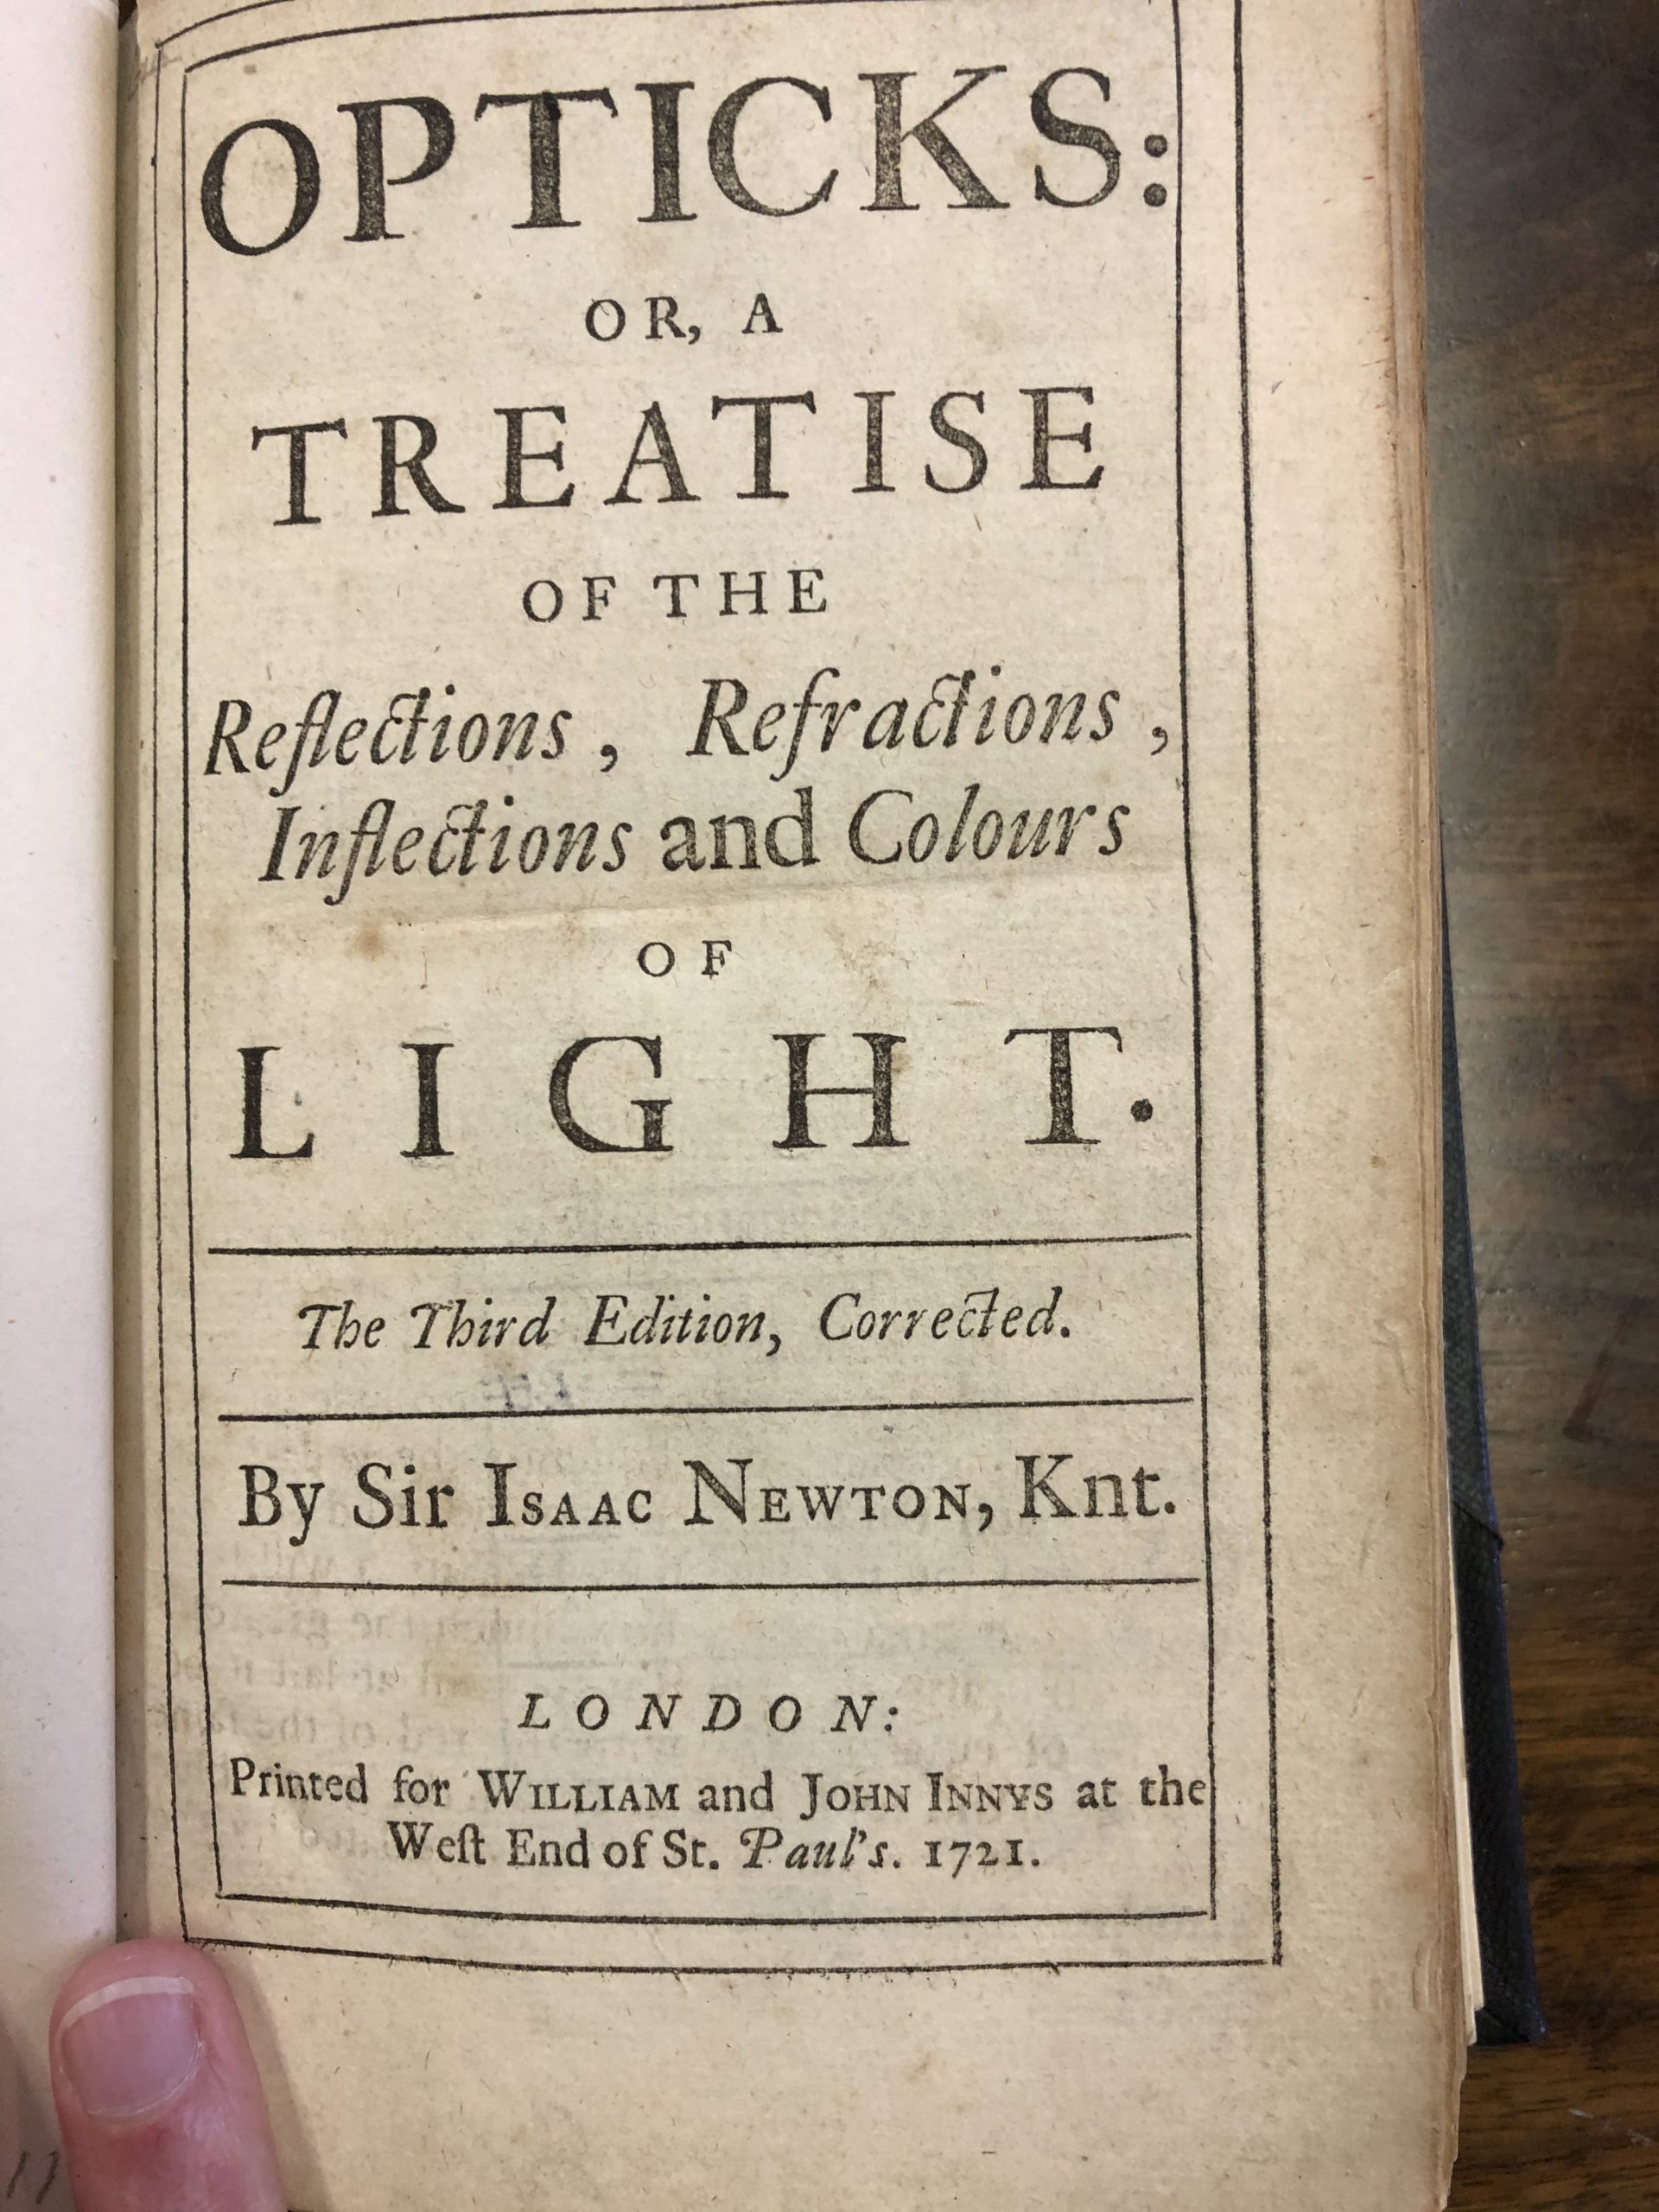 Photograph of a book by Sir Isaac Newton, printed in 1721.